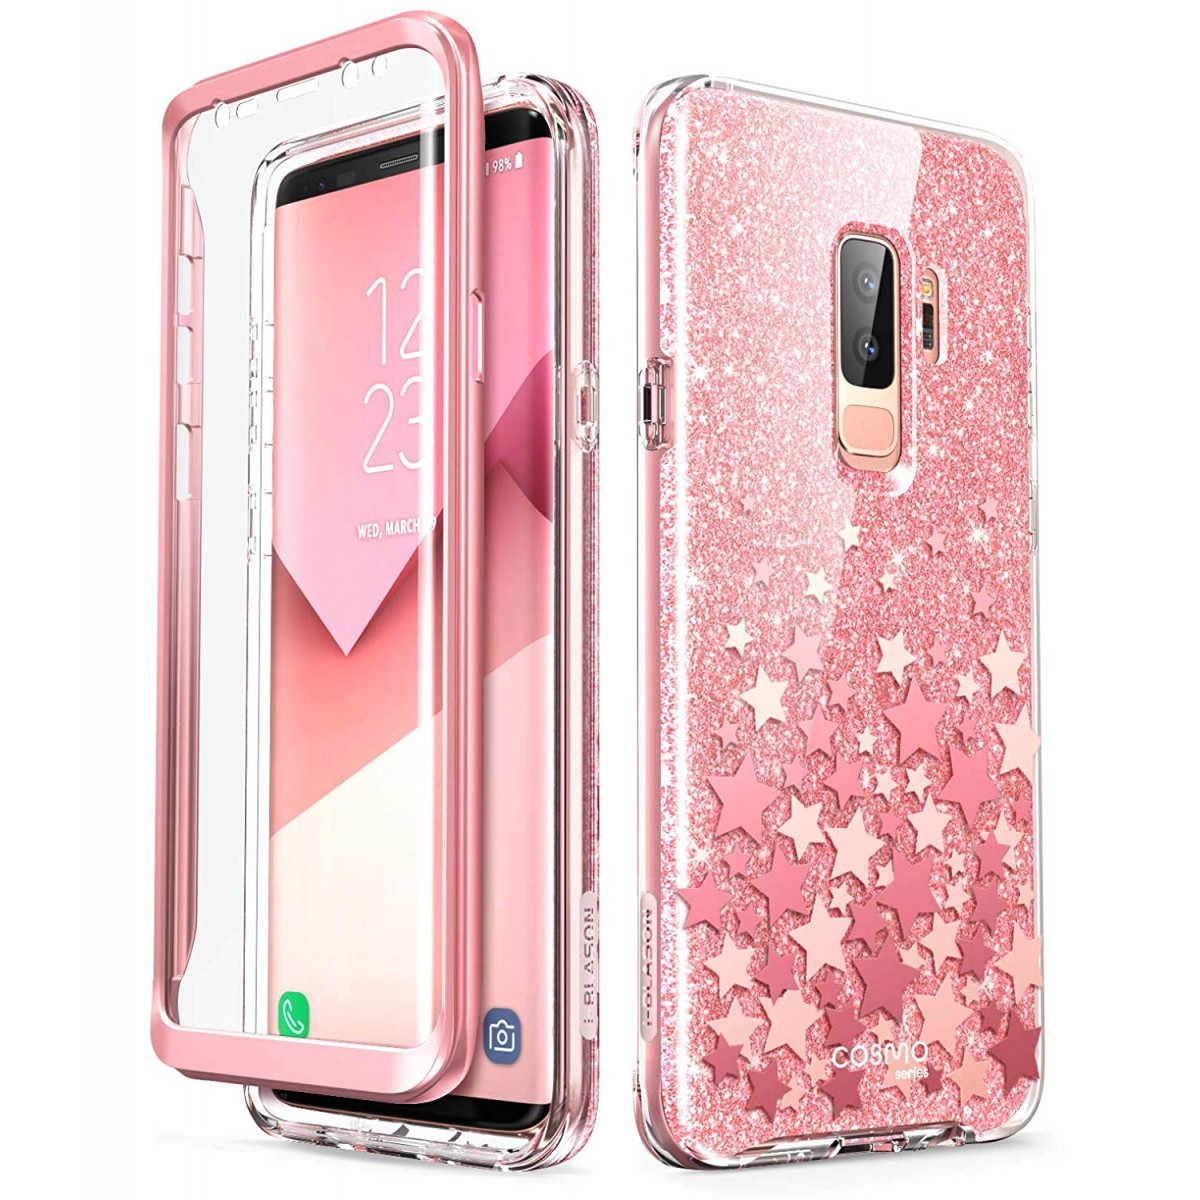 newest 6c67d 03e6e Samsung Galaxy S9 Plus Case, [Built-in Screen Protector] i-Blason [Cosmo]  Full-Body Glitter Clear Bumper Case for Galaxy S9 Plus (2018 Release) (Pink)